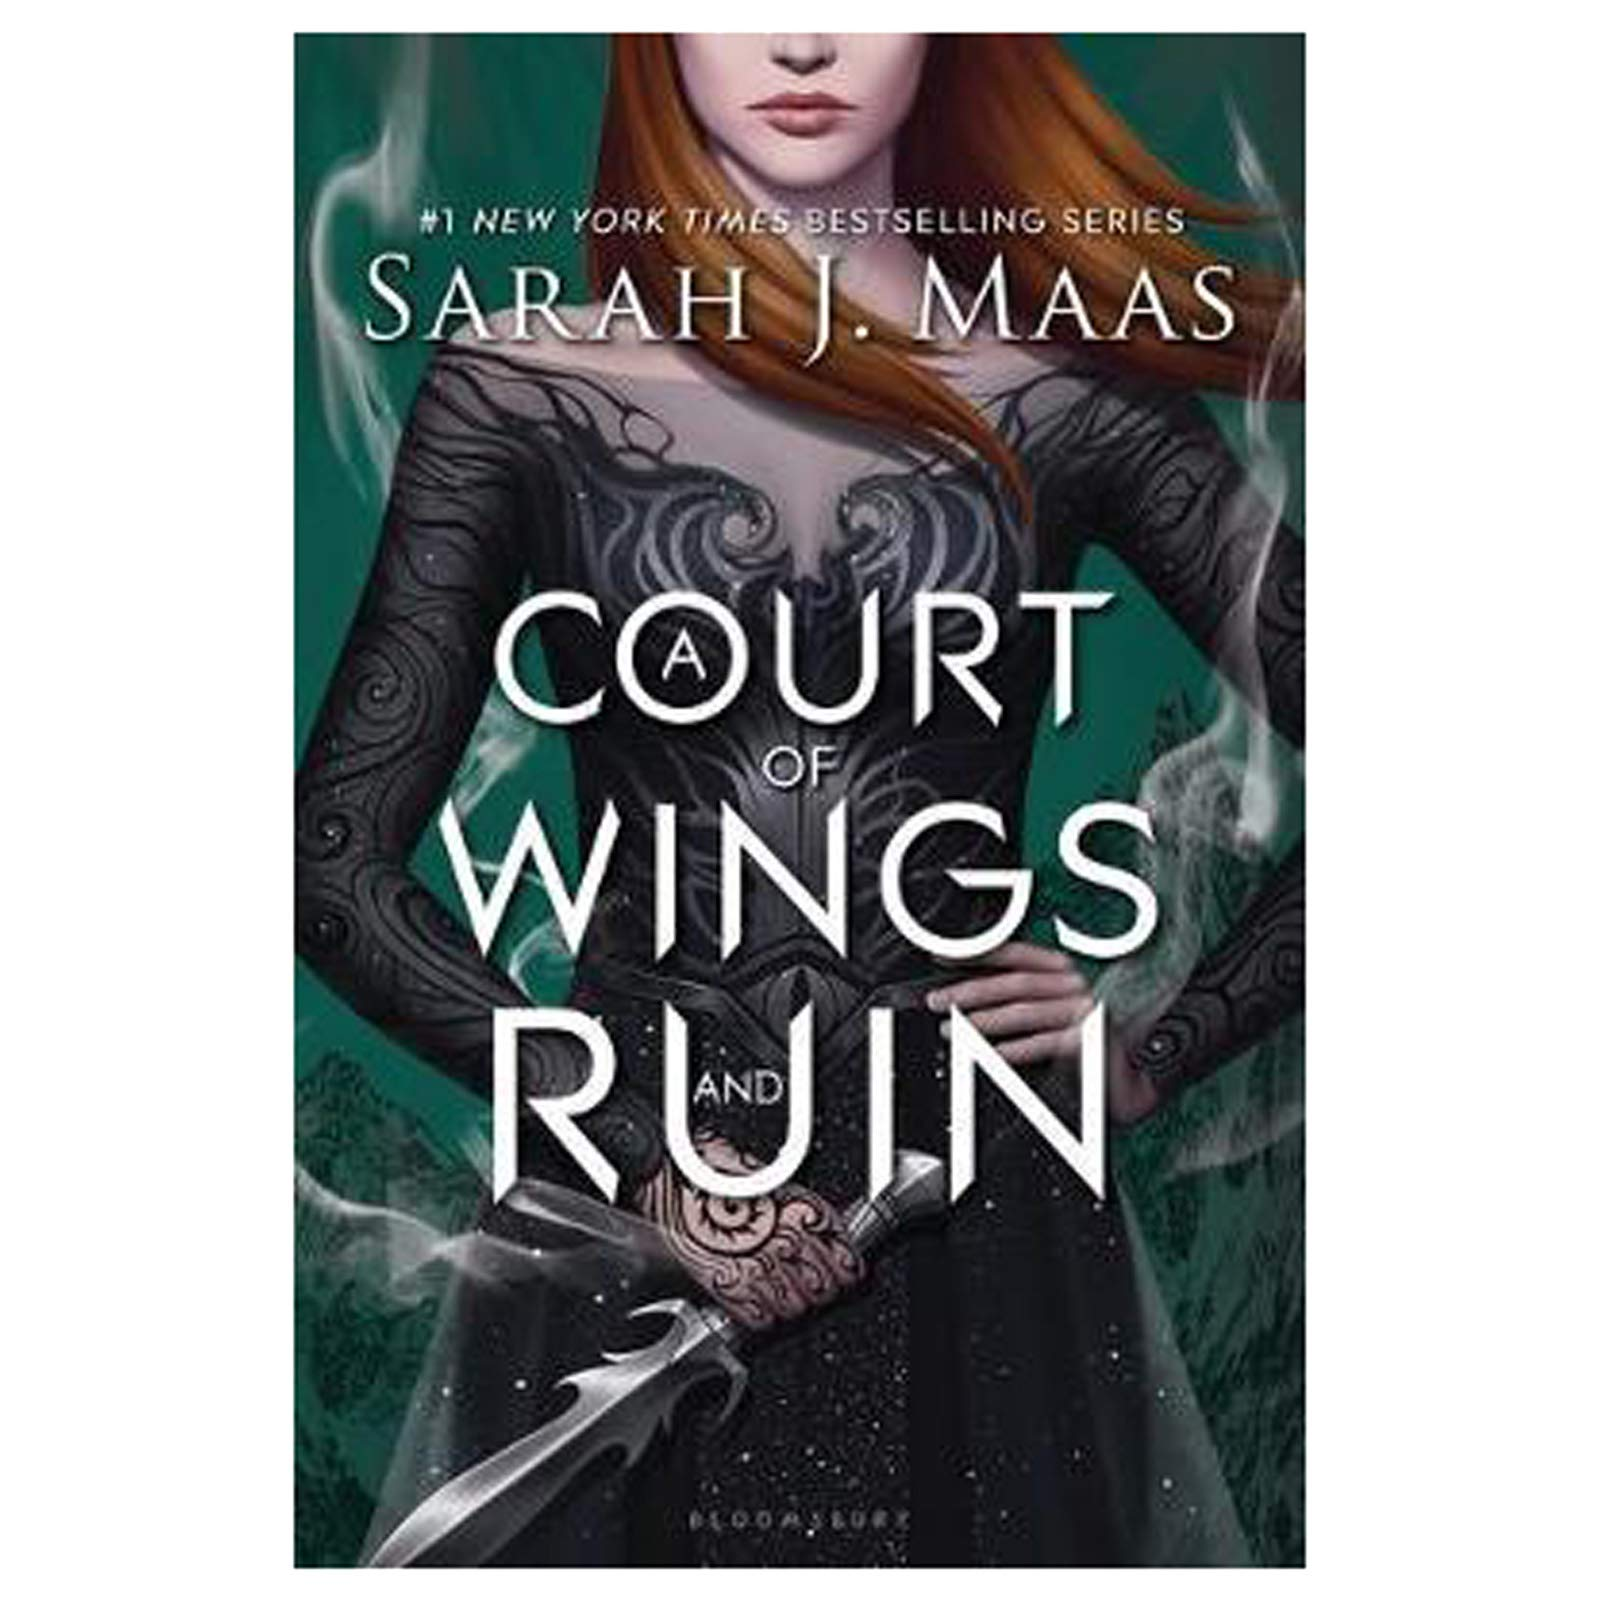 a court of wings and ruin read free novels online